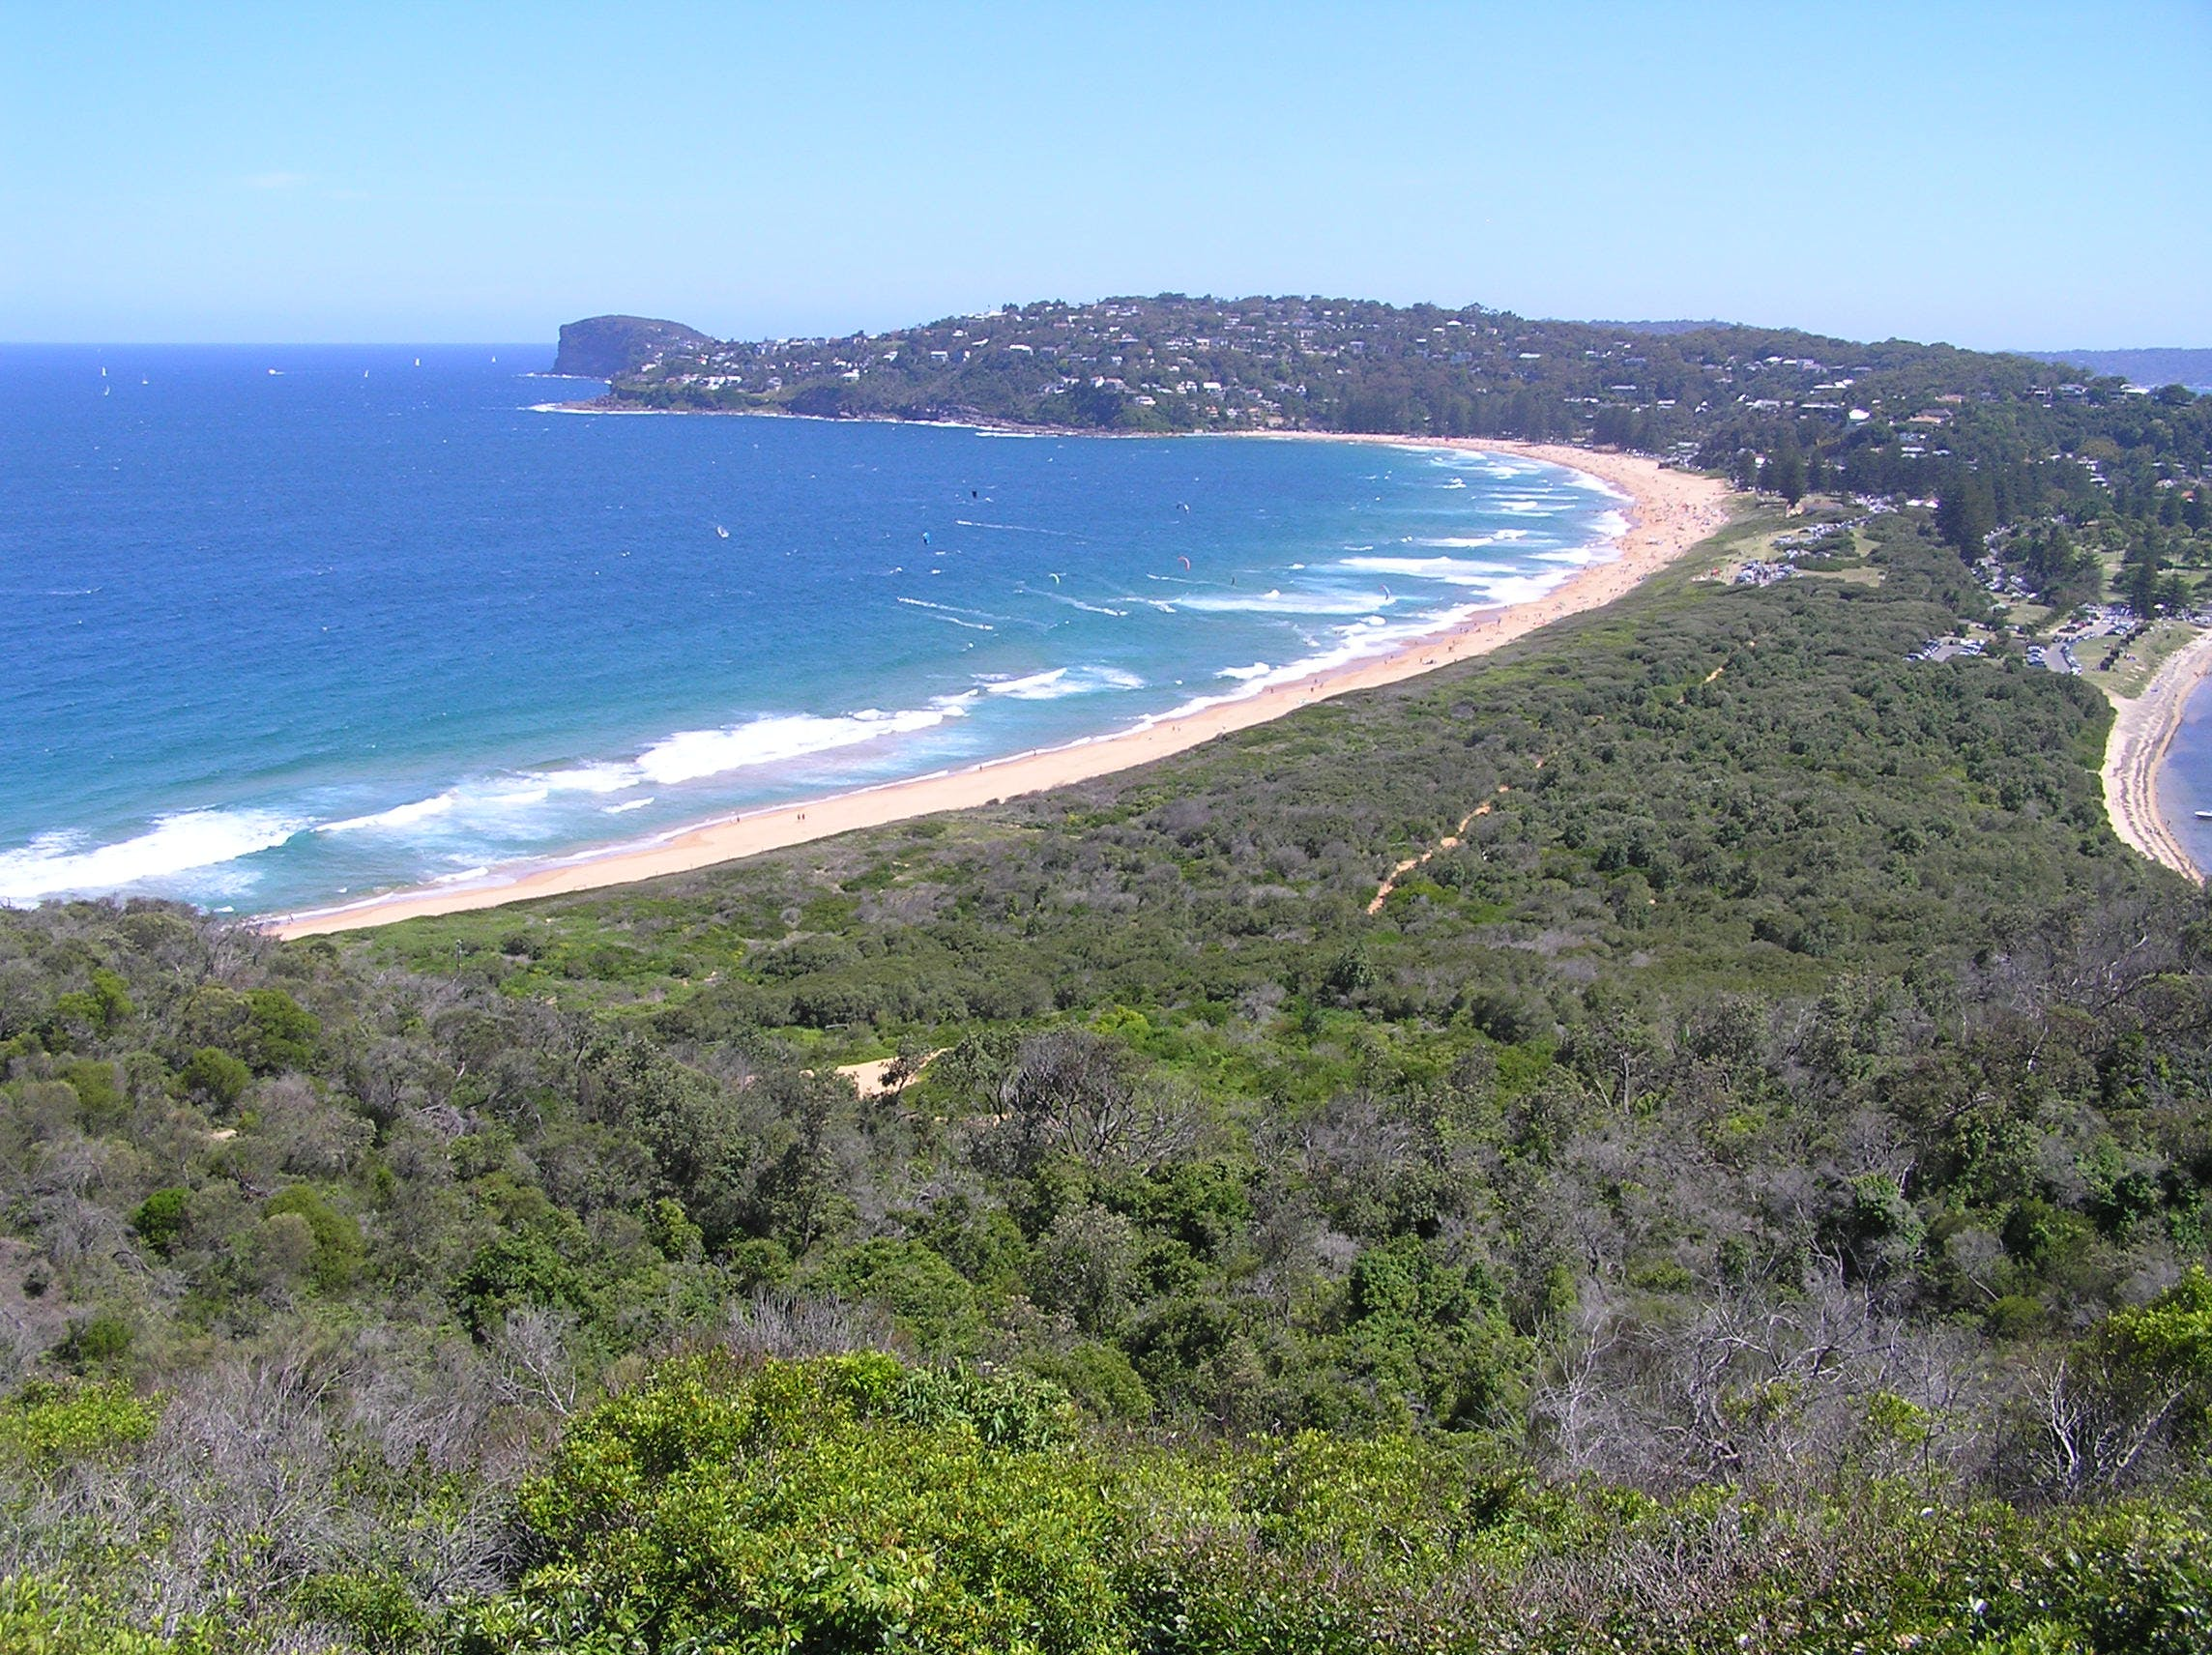 From Barrenjoey Looking South